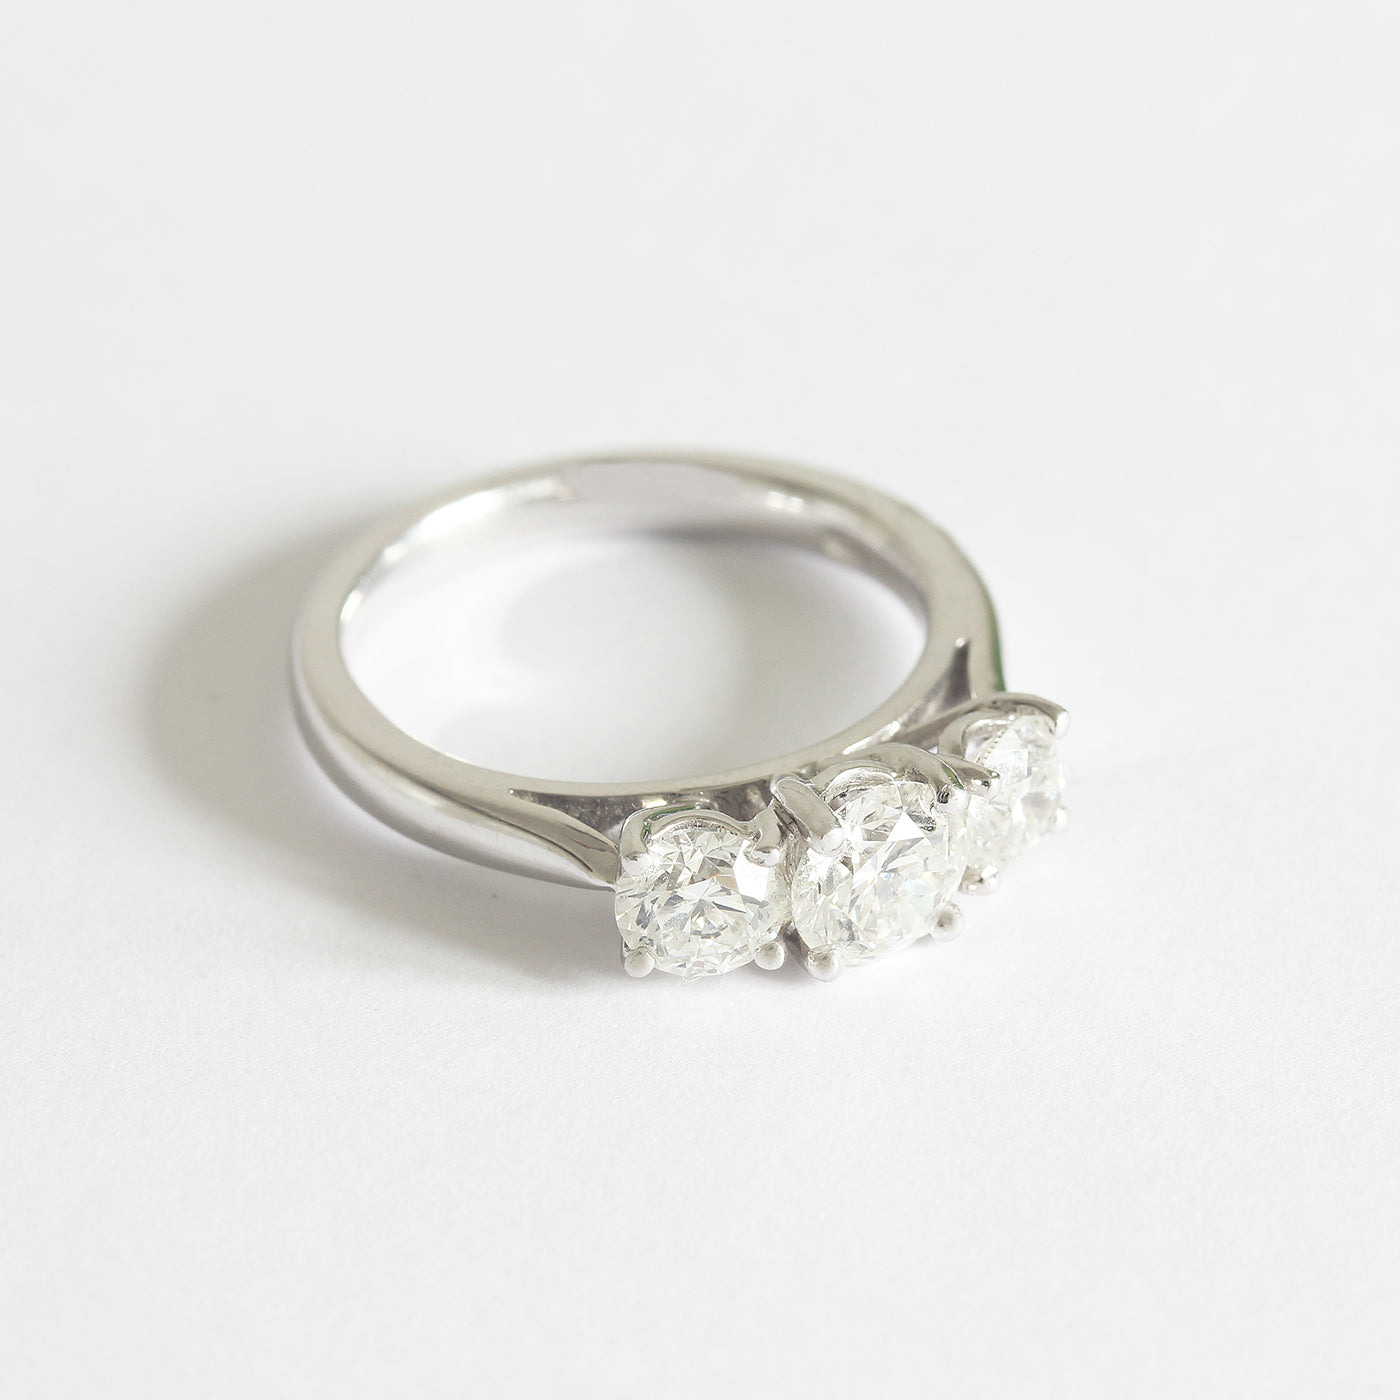 a beautiful certificated diamond set 3 stone engagement ring with round stones graduated in white gold